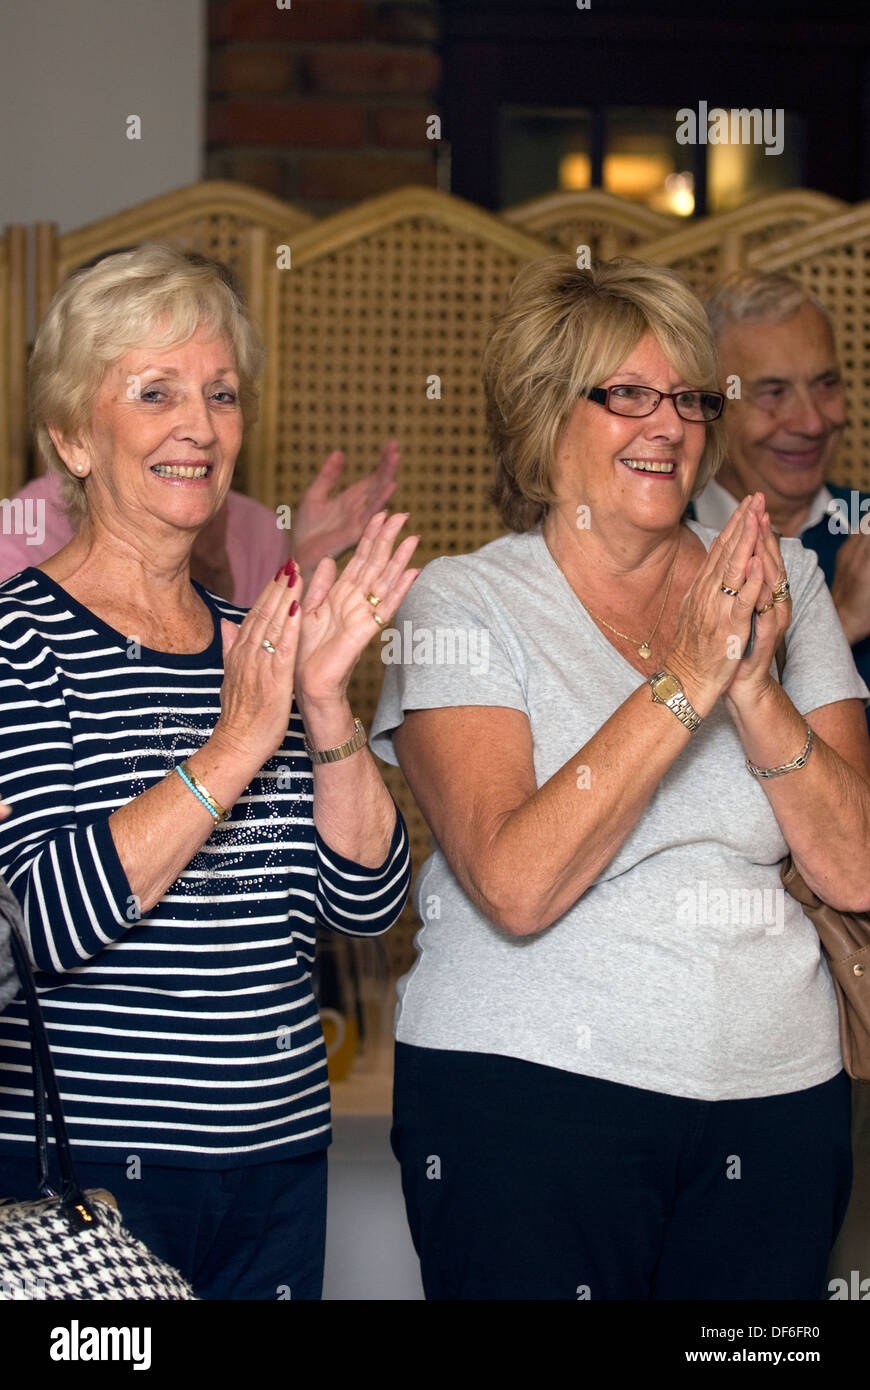 Elderly women showing their appreciation for the entertainment (choir) at a Macmillan Cancer Support Coffee Morning, Surrey, UK - Stock Image